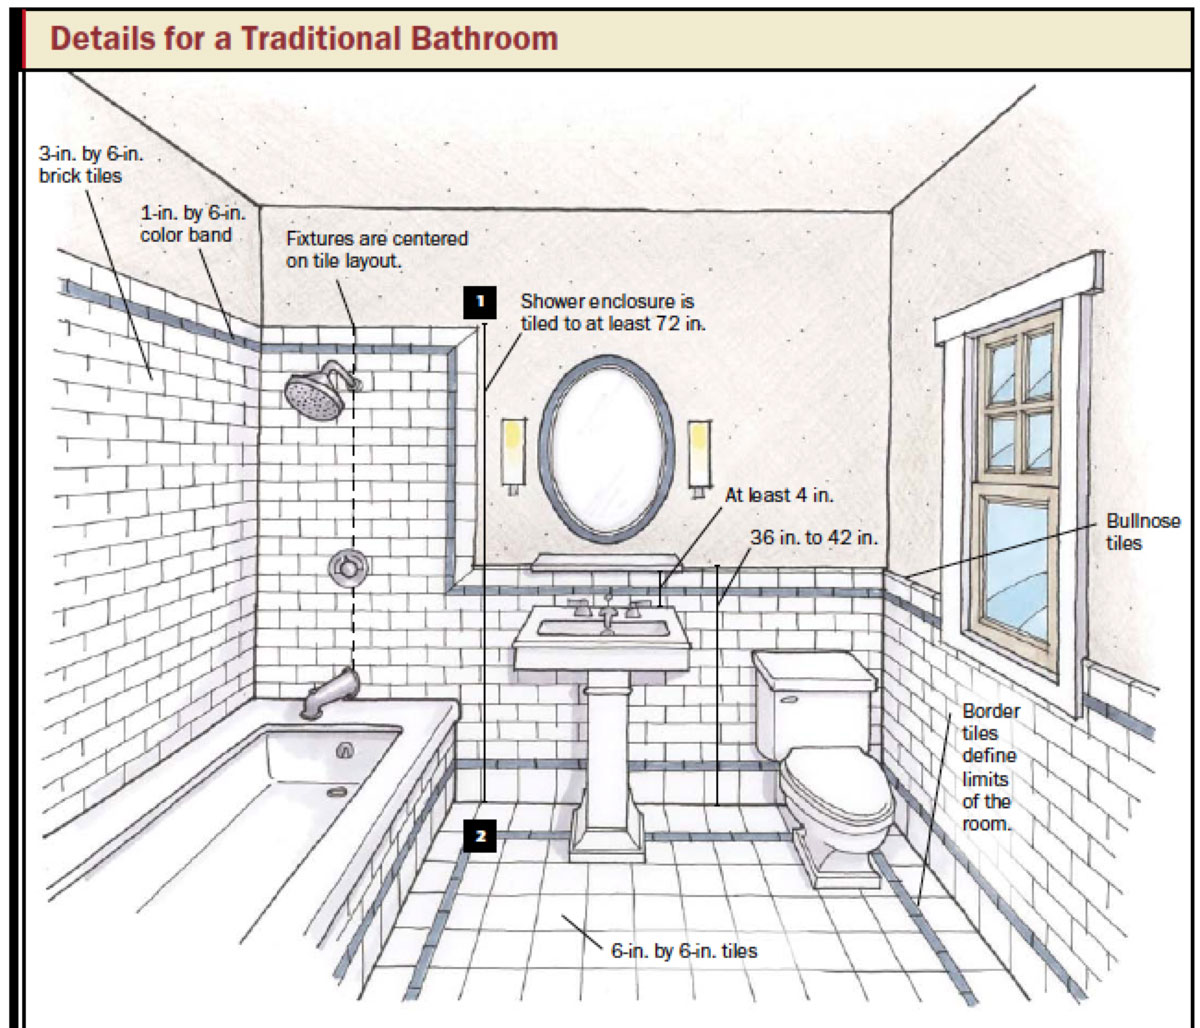 Bathroom Design U0026 Planning Tips: